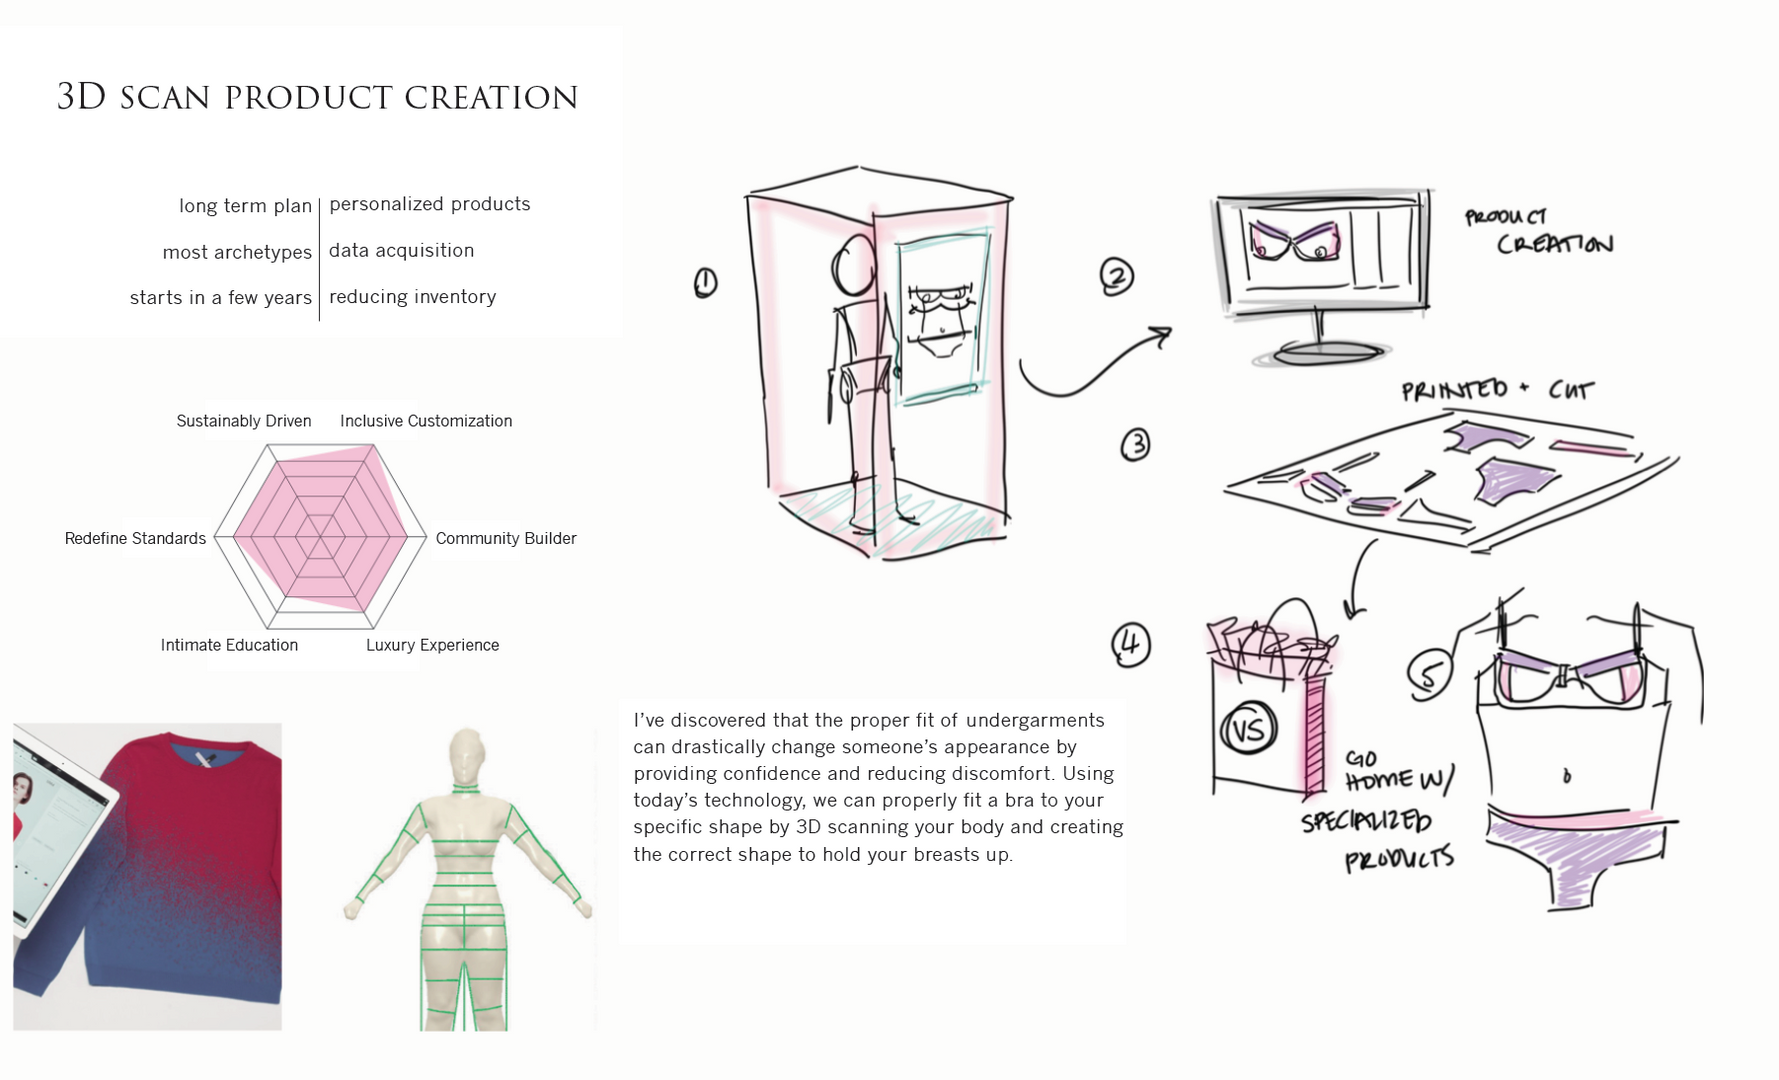 3D Product Creation